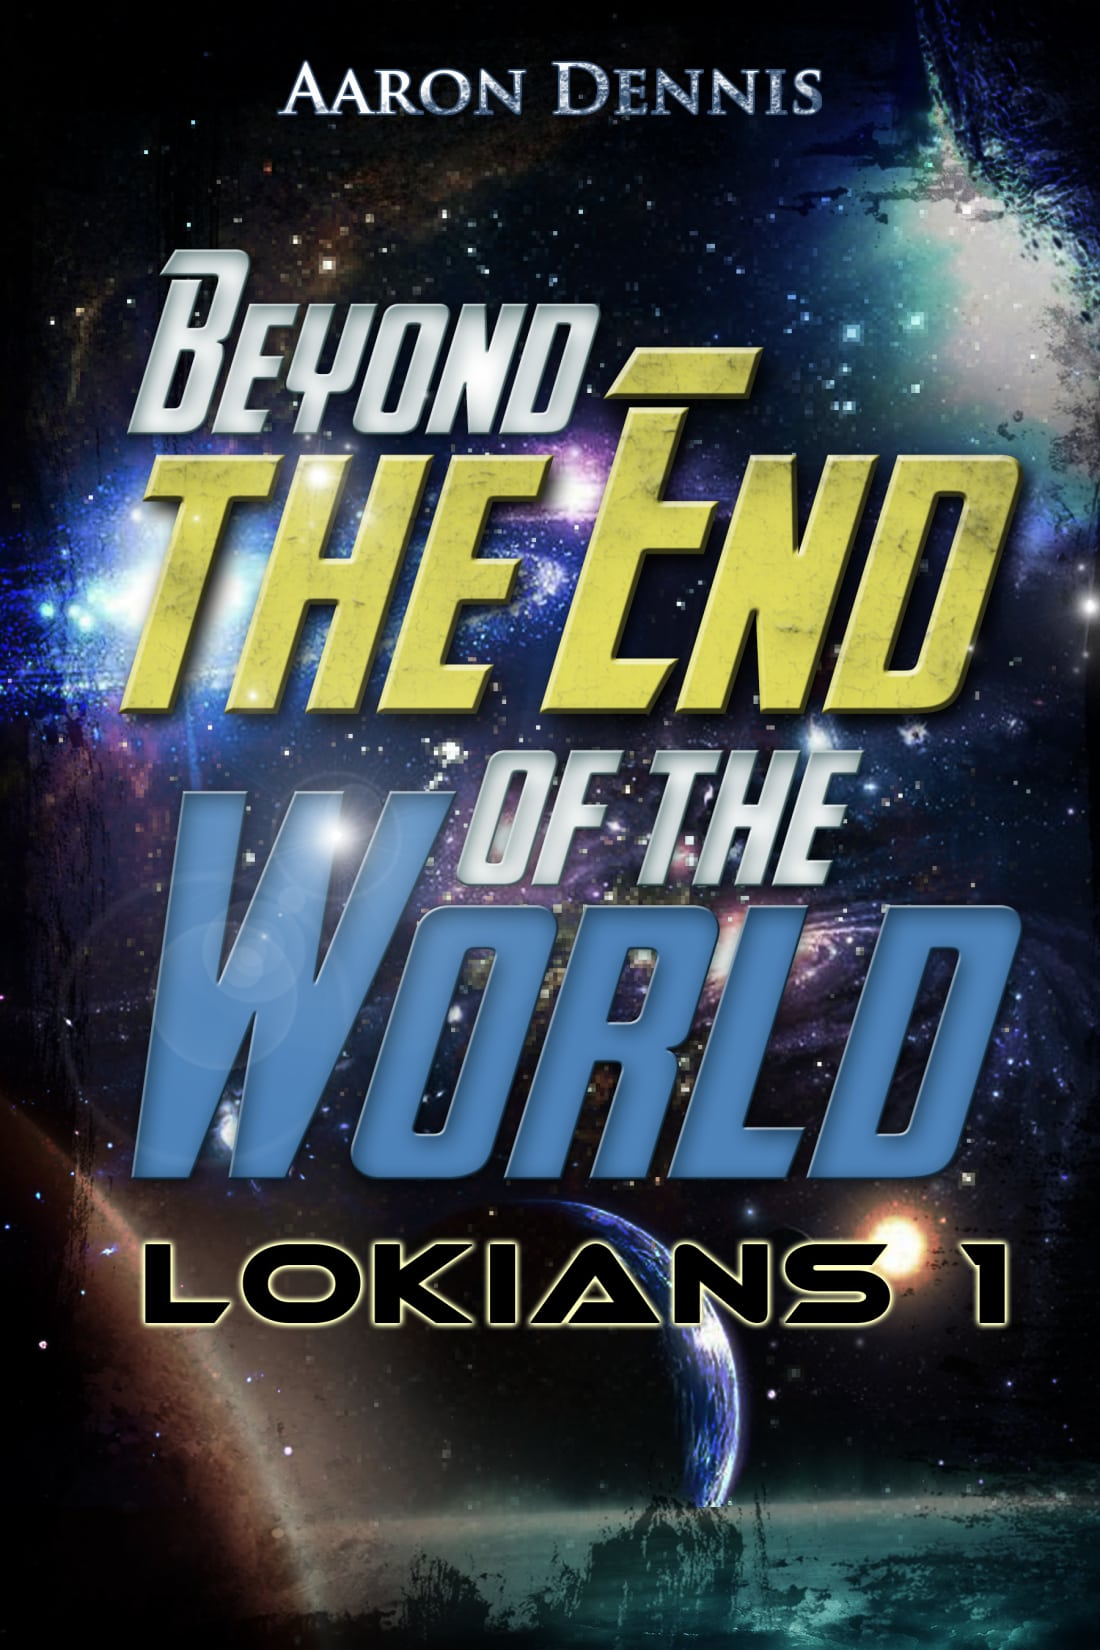 Part 15 of Beyond the End of the World, Lokians 1